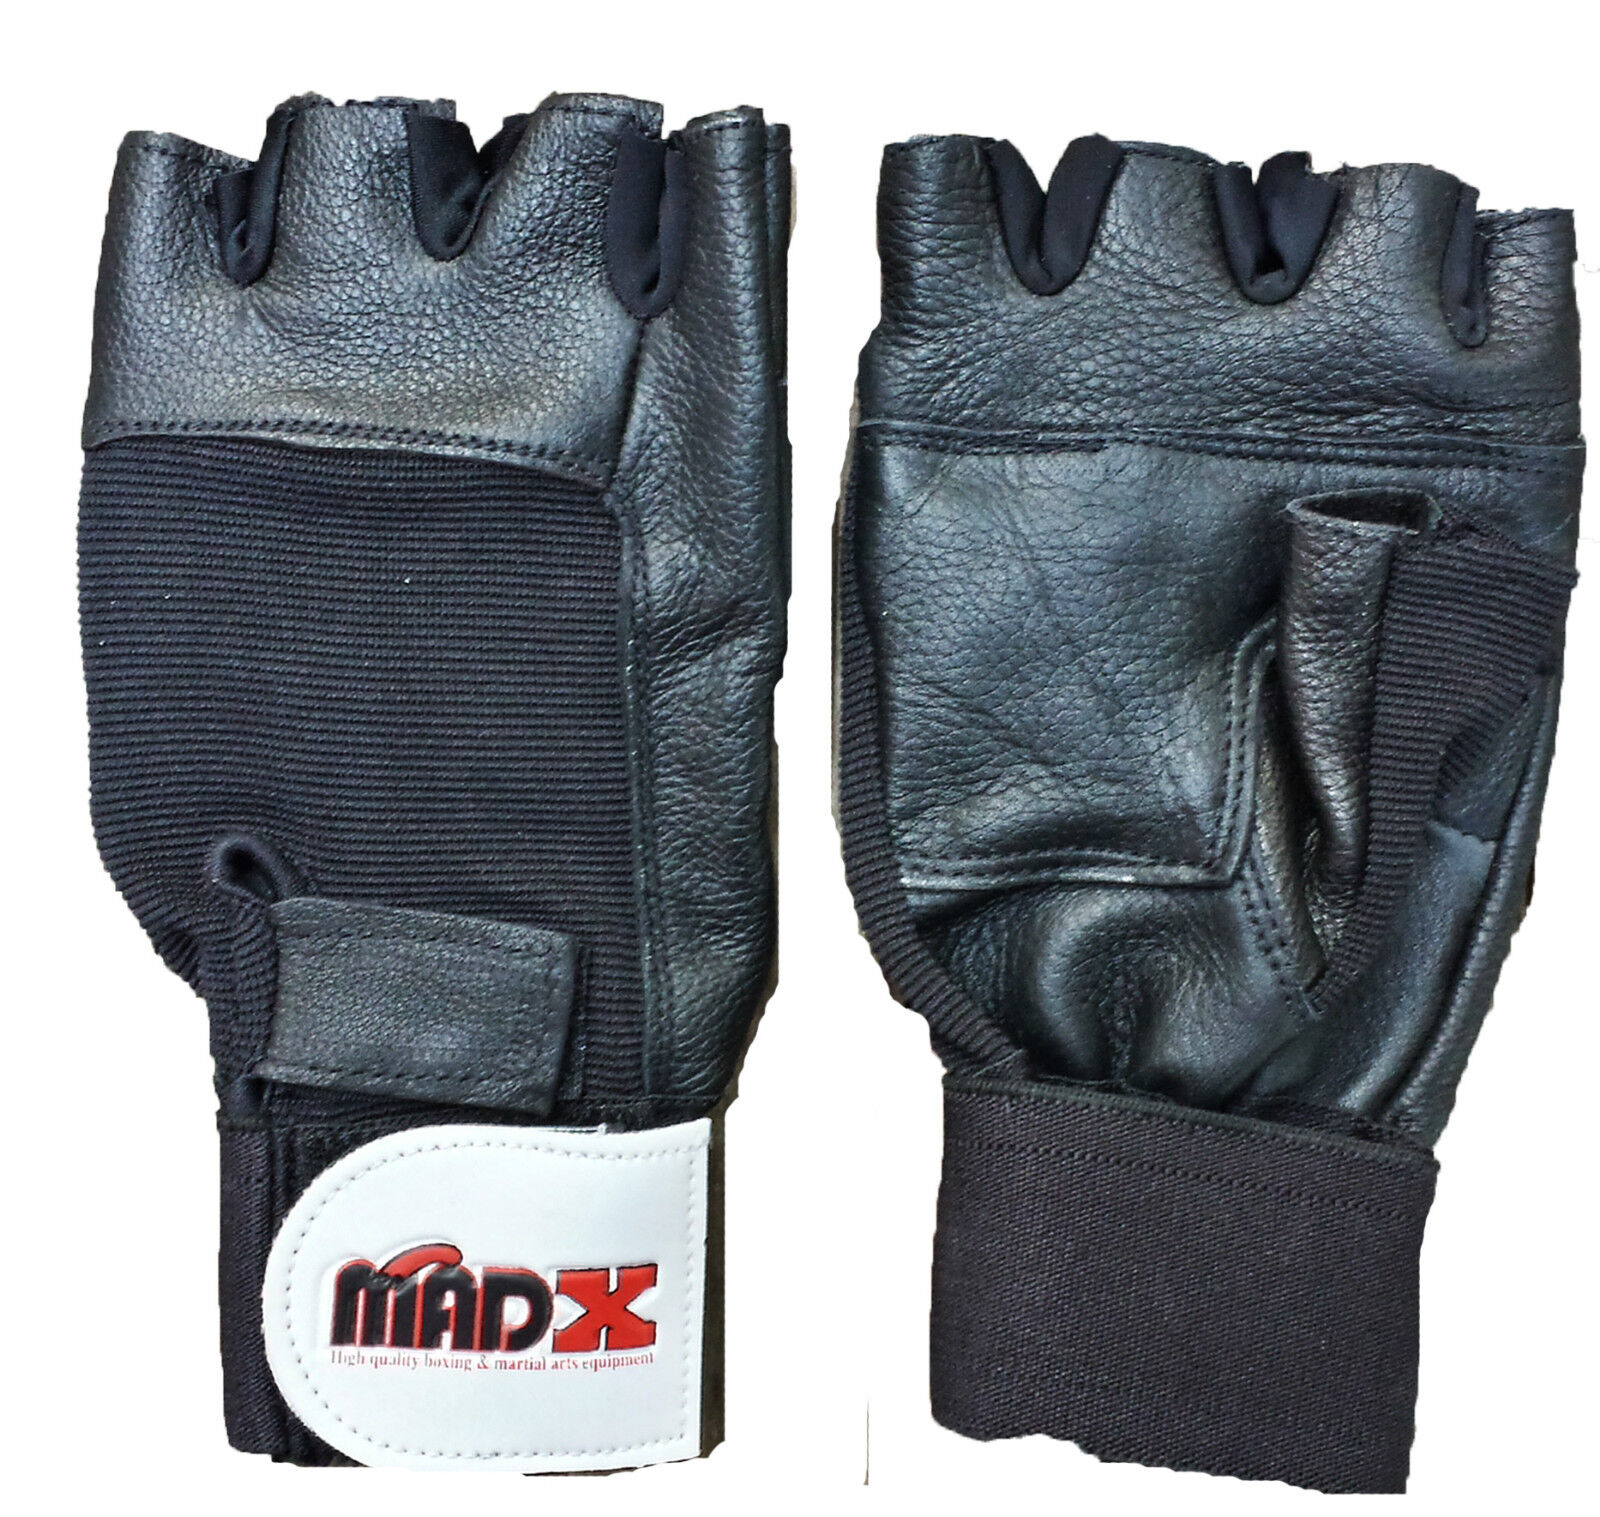 Weight Lifting Gloves: MADX Leather Weight Lifting Gloves Wrap Around Wrist